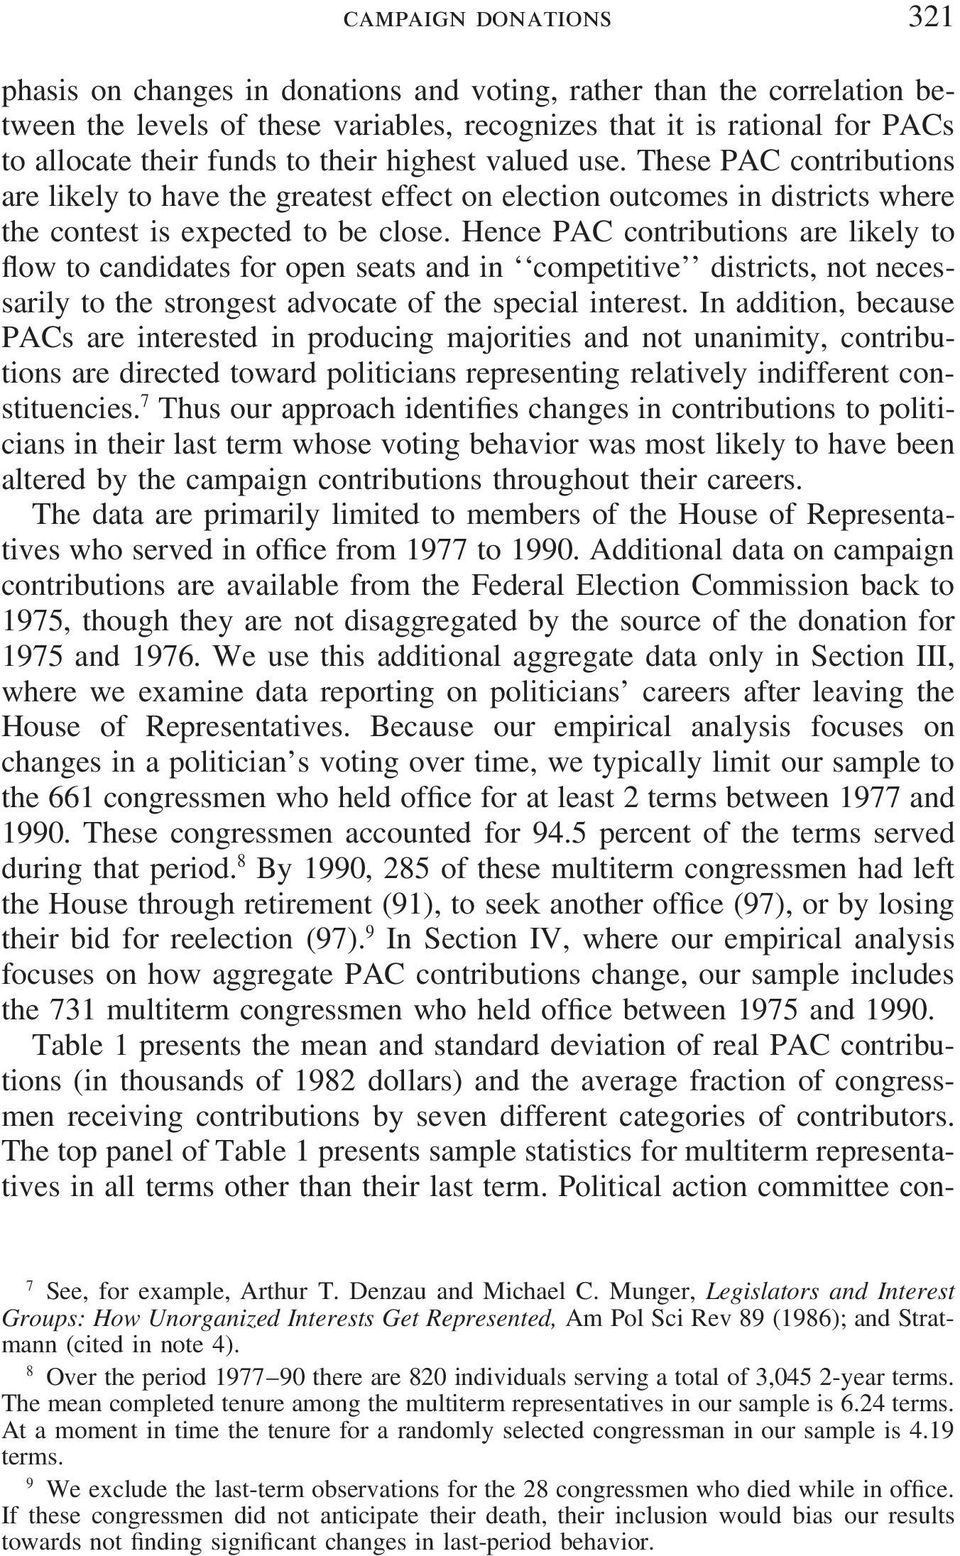 Hence PAC contributions are likely to flow to candidates for open seats and in competitive districts, not necessarily to the strongest advocate of the special interest.